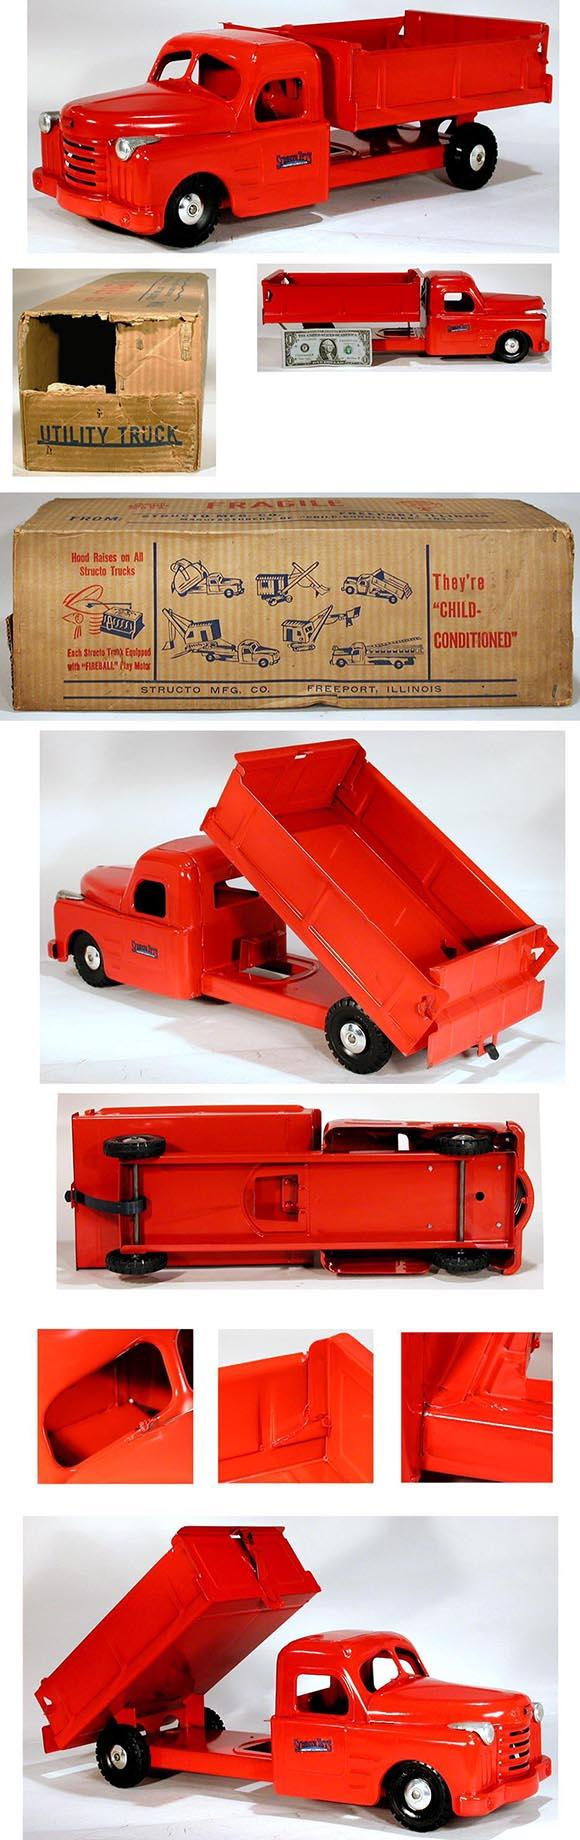 1951 Structo, No. 500 Dumping Utility Truck in Original Box